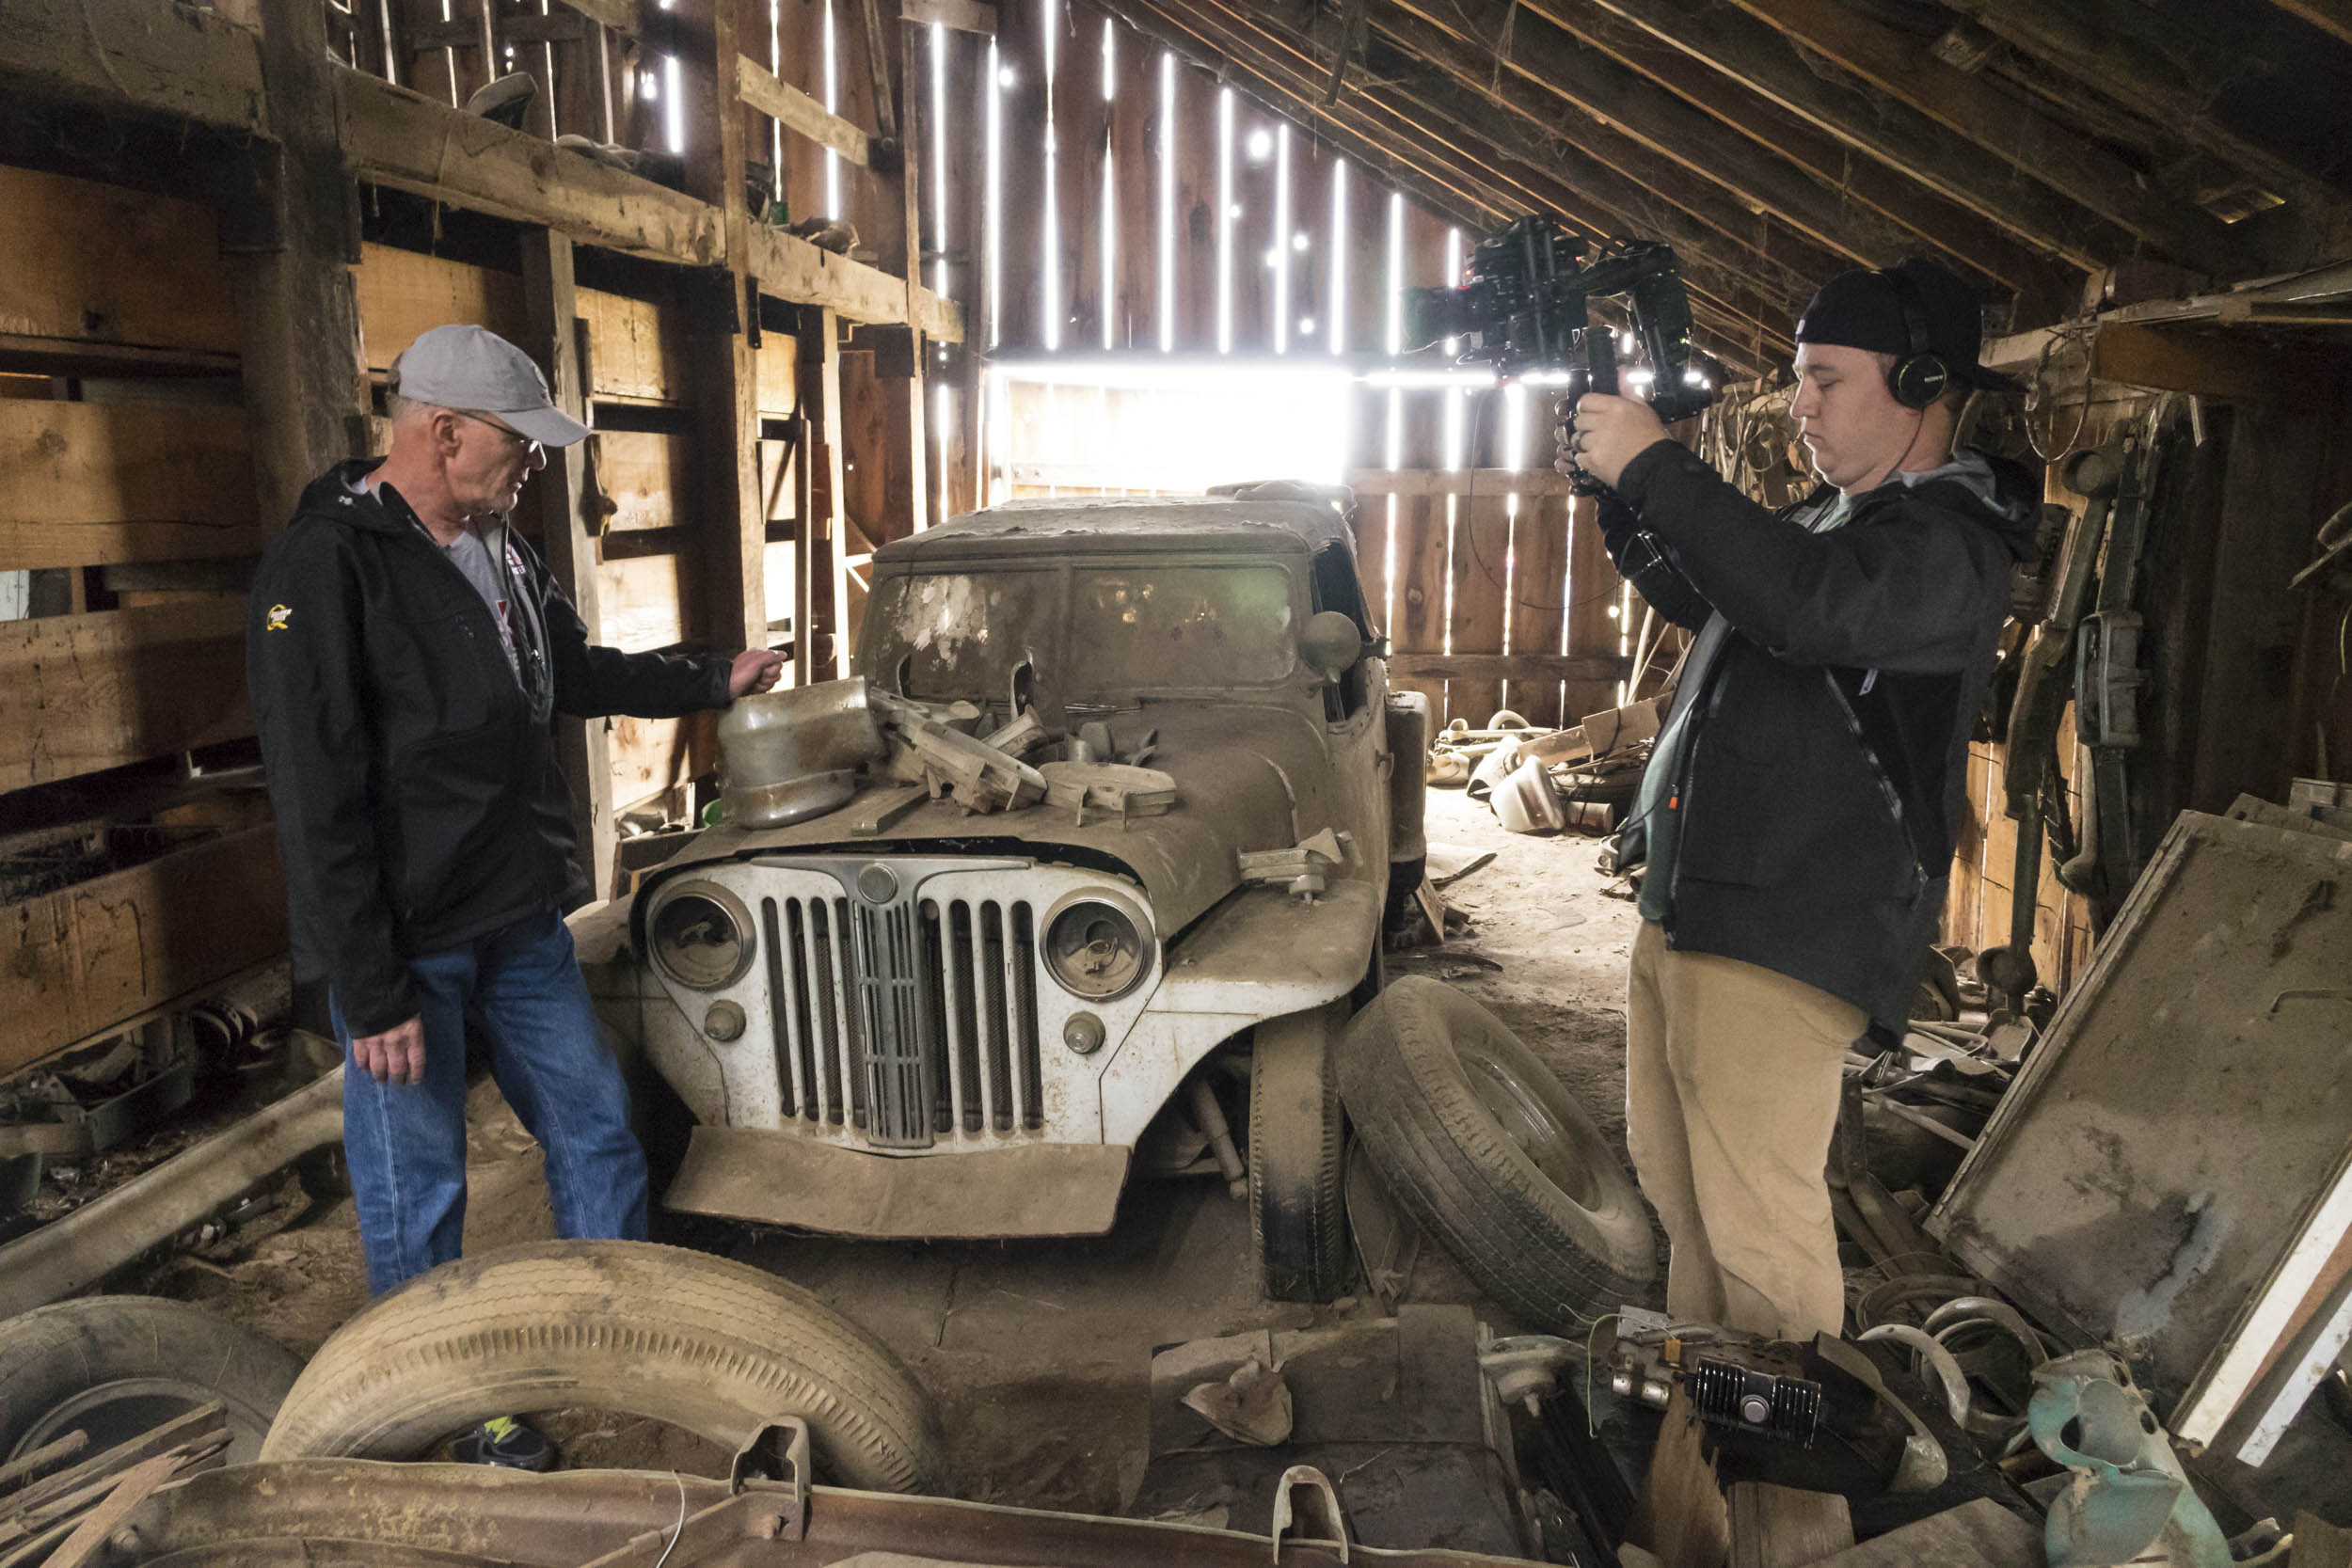 Our man Tom Cotter (left) wades through the junk and the rat doo-doo for the neglected and the forgotten, such as this old Jeepster. He has tales to tell and cars yet to find.